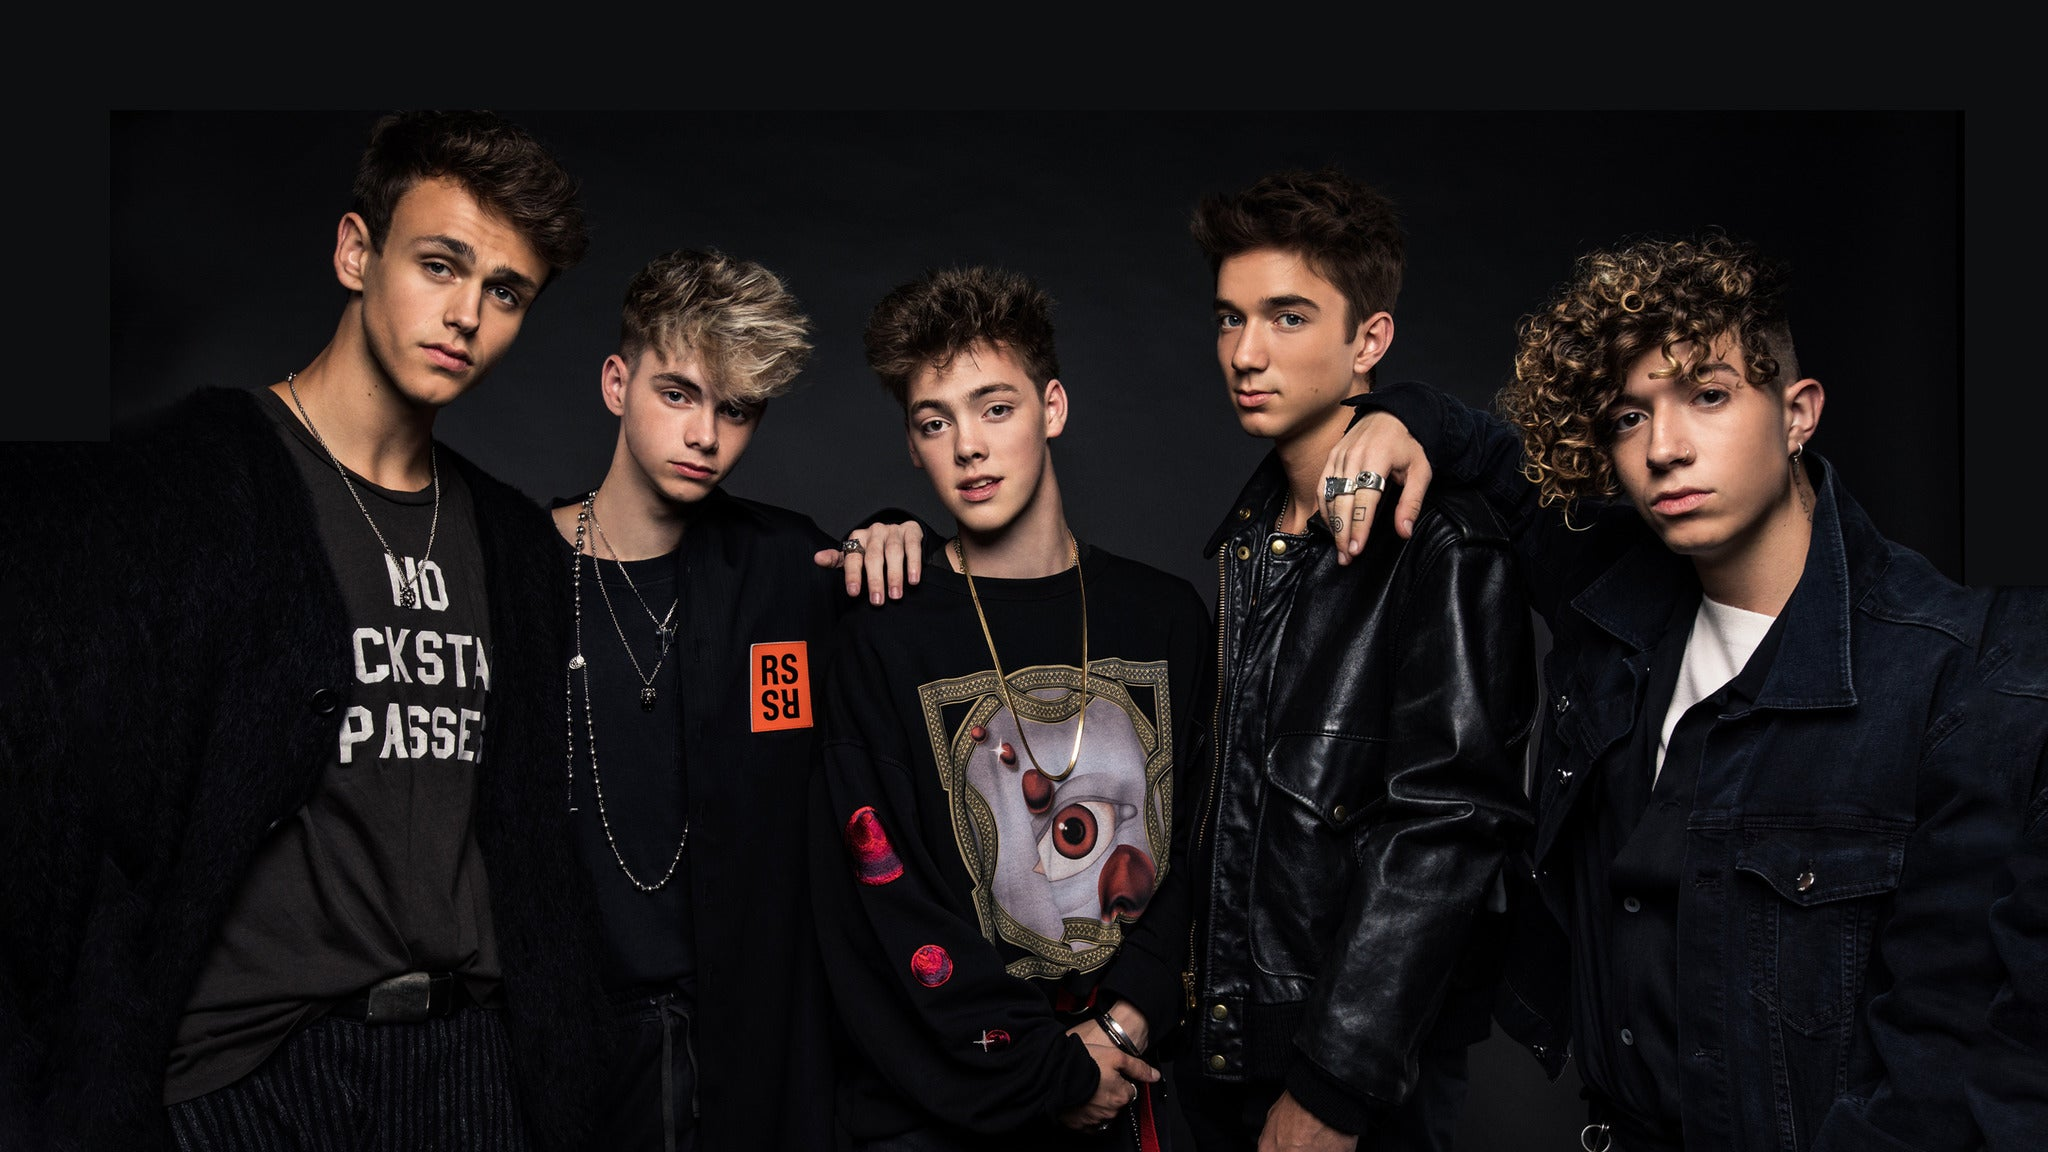 Why Don't We Kiss 107.1 Kissmas Concert at Madison Theater